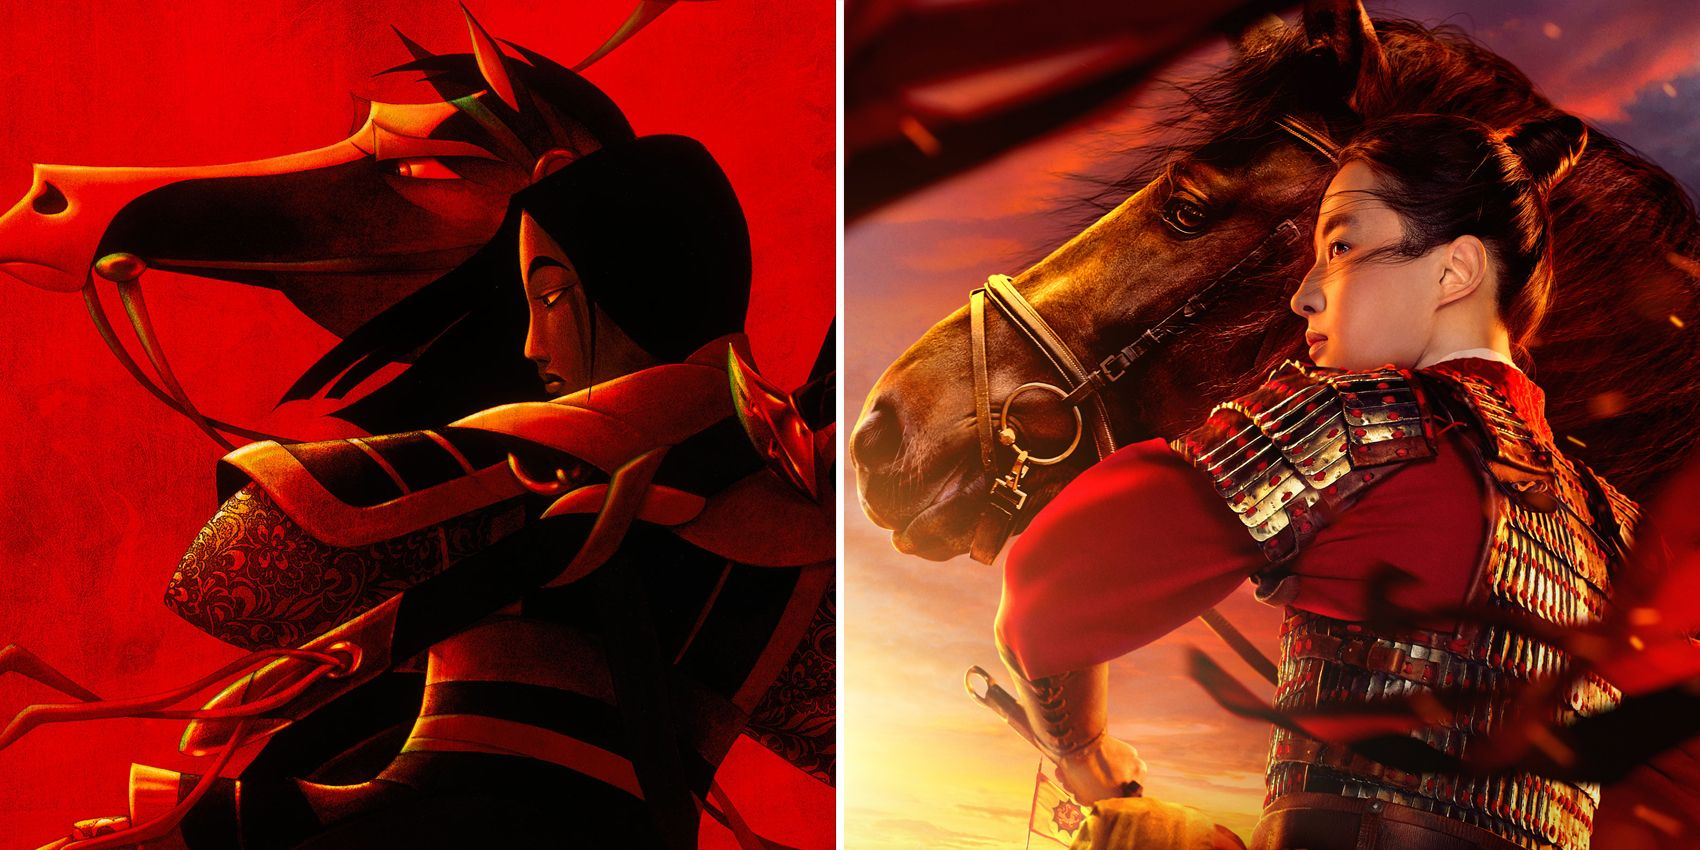 Mulan 2020 10 Big Changes They Made From The Original